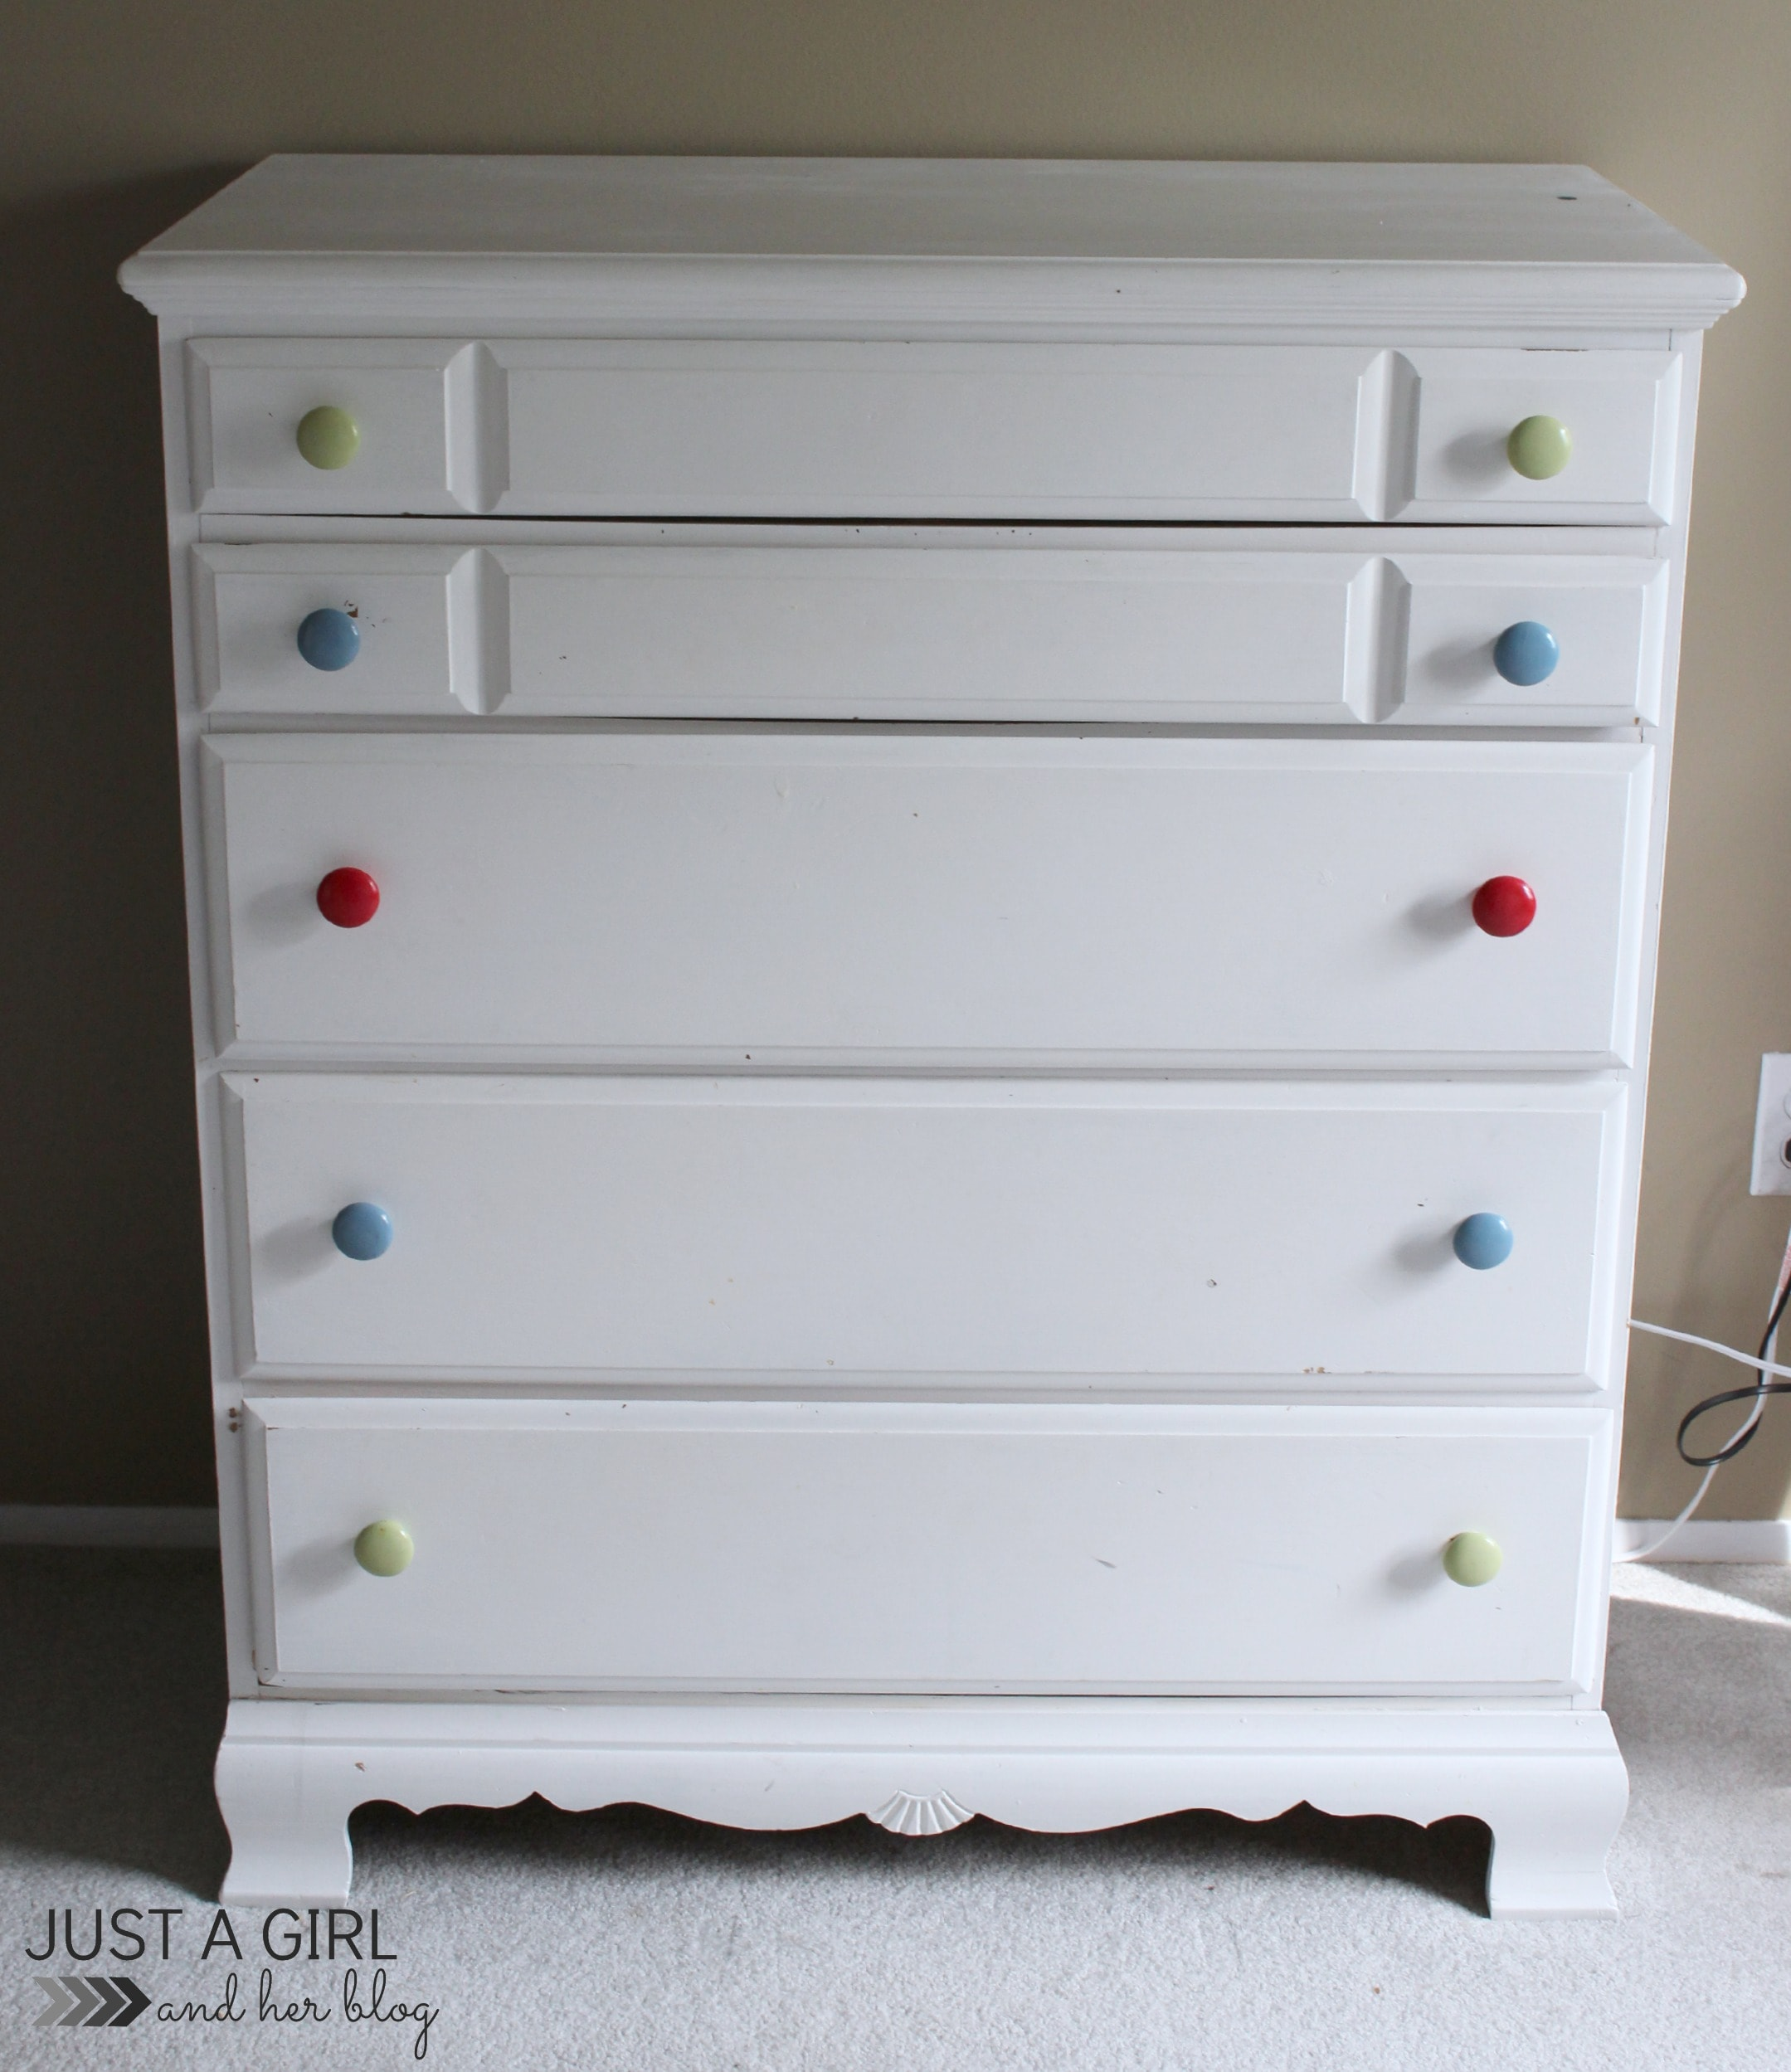 malm door fall ikea new girls for and home modern white dresser decor g sink